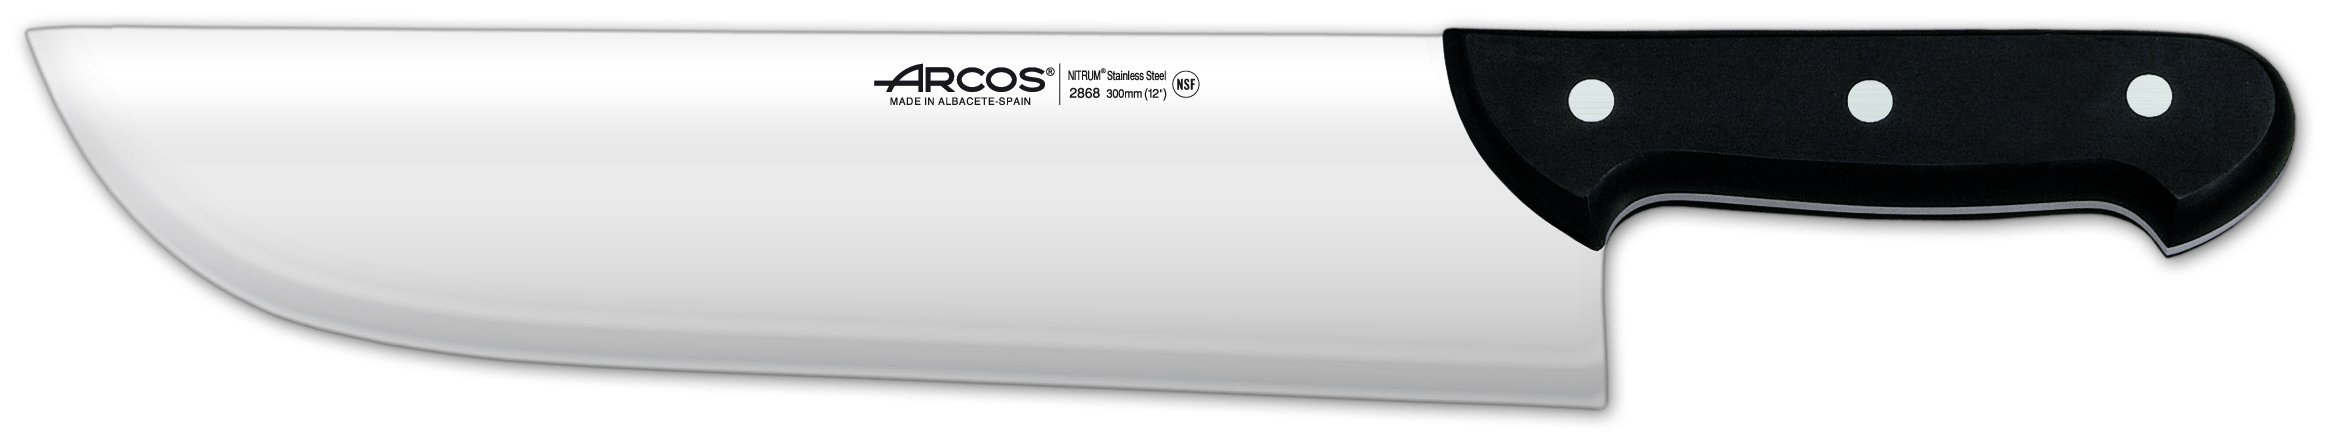 Arcos 12-Inch 300 mm Universal Cleaver